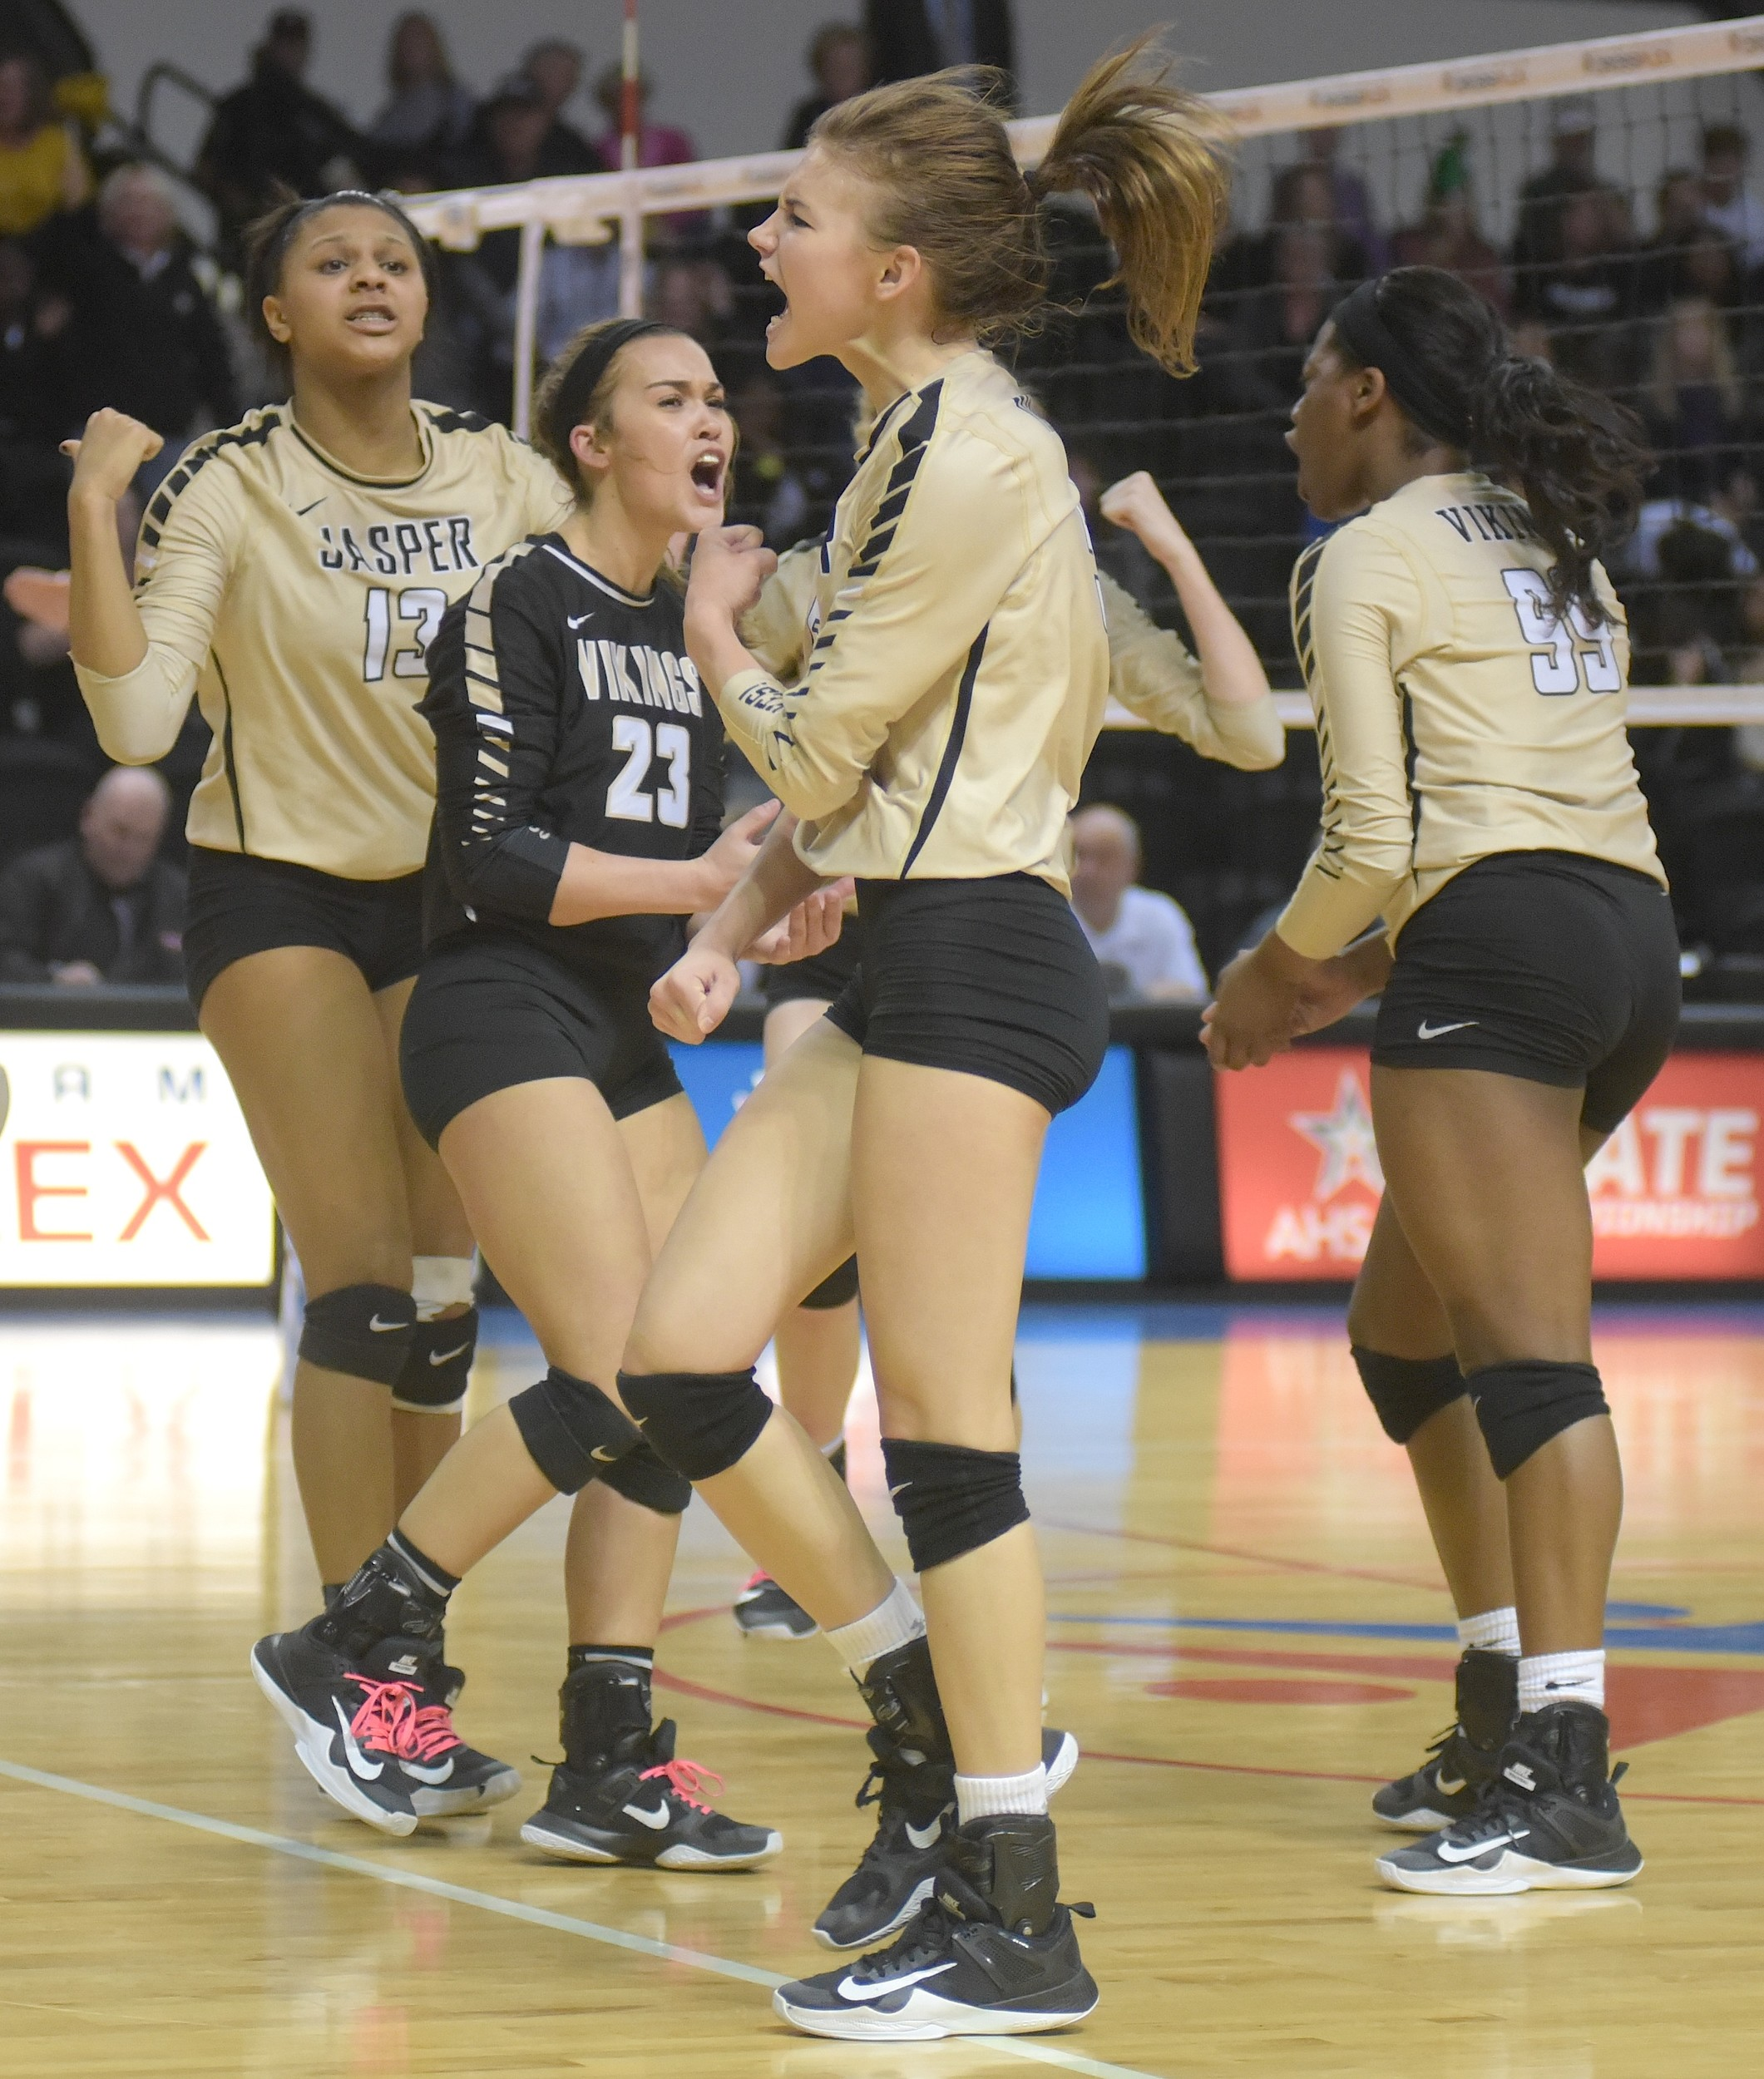 Jasper player celebrate winning a point in the fourth set of the Class 6A state championship match against Pelham.